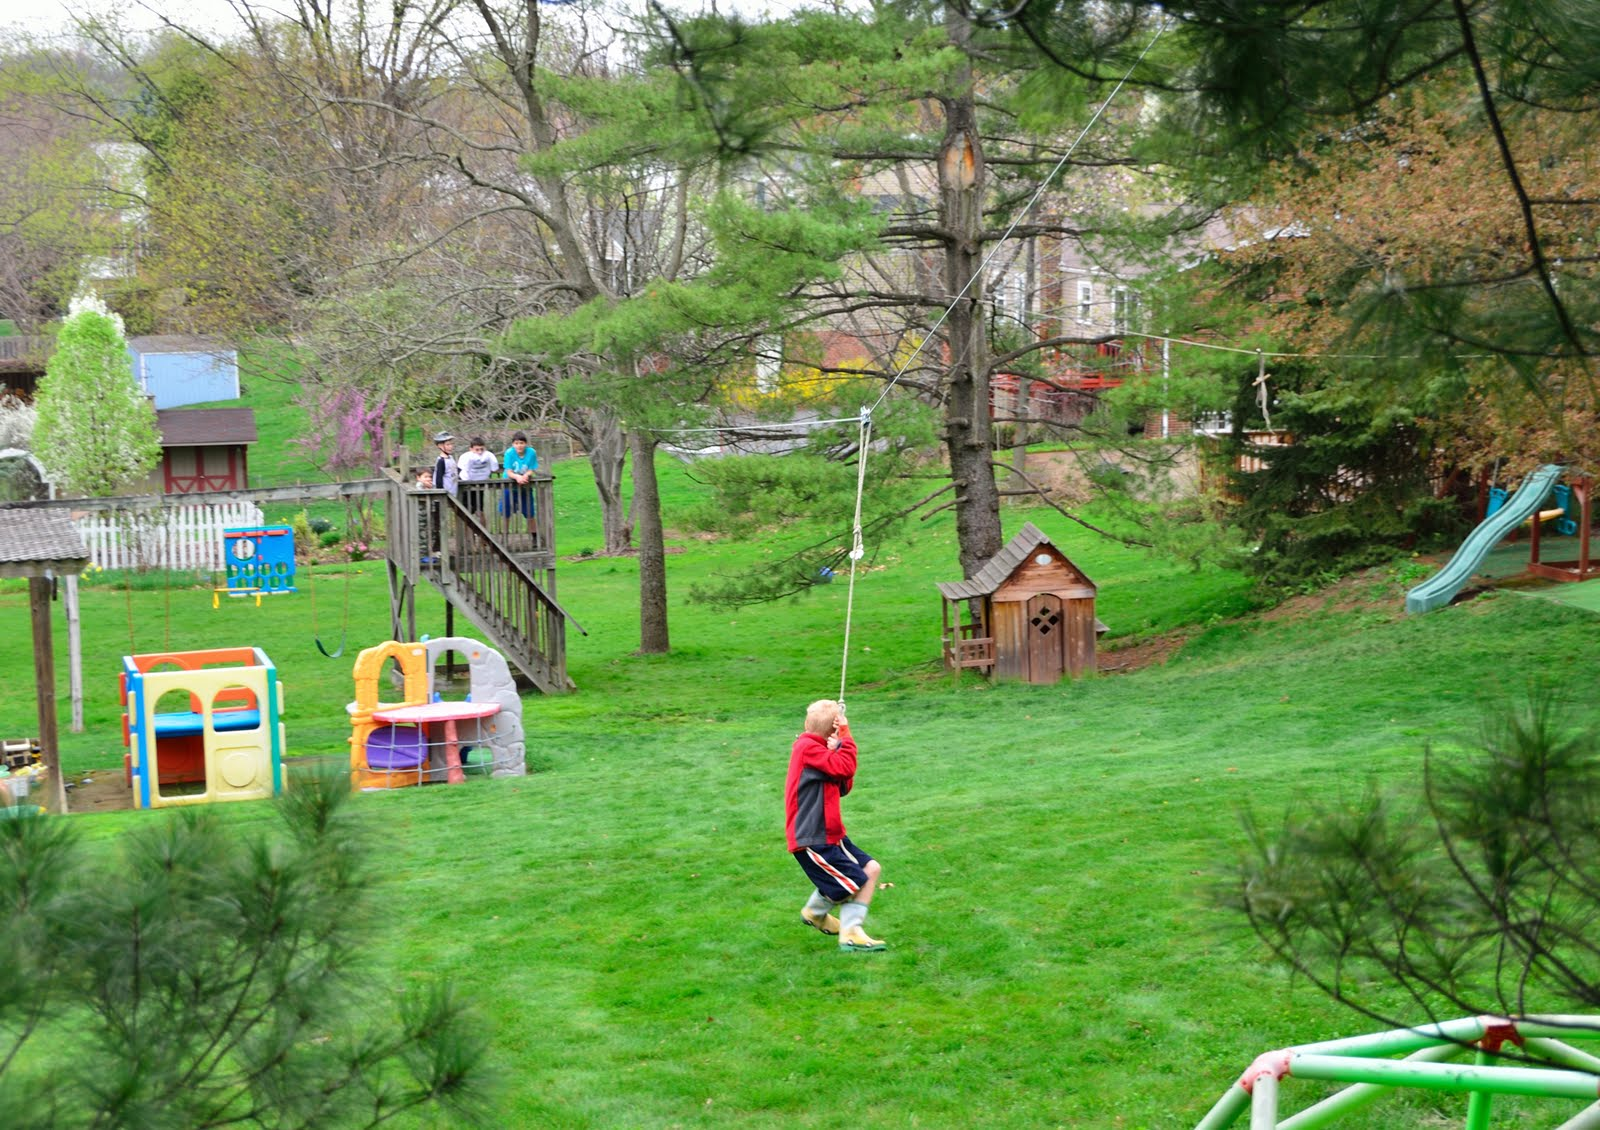 Roman Kharkovski personal blog: Backyard zip line project